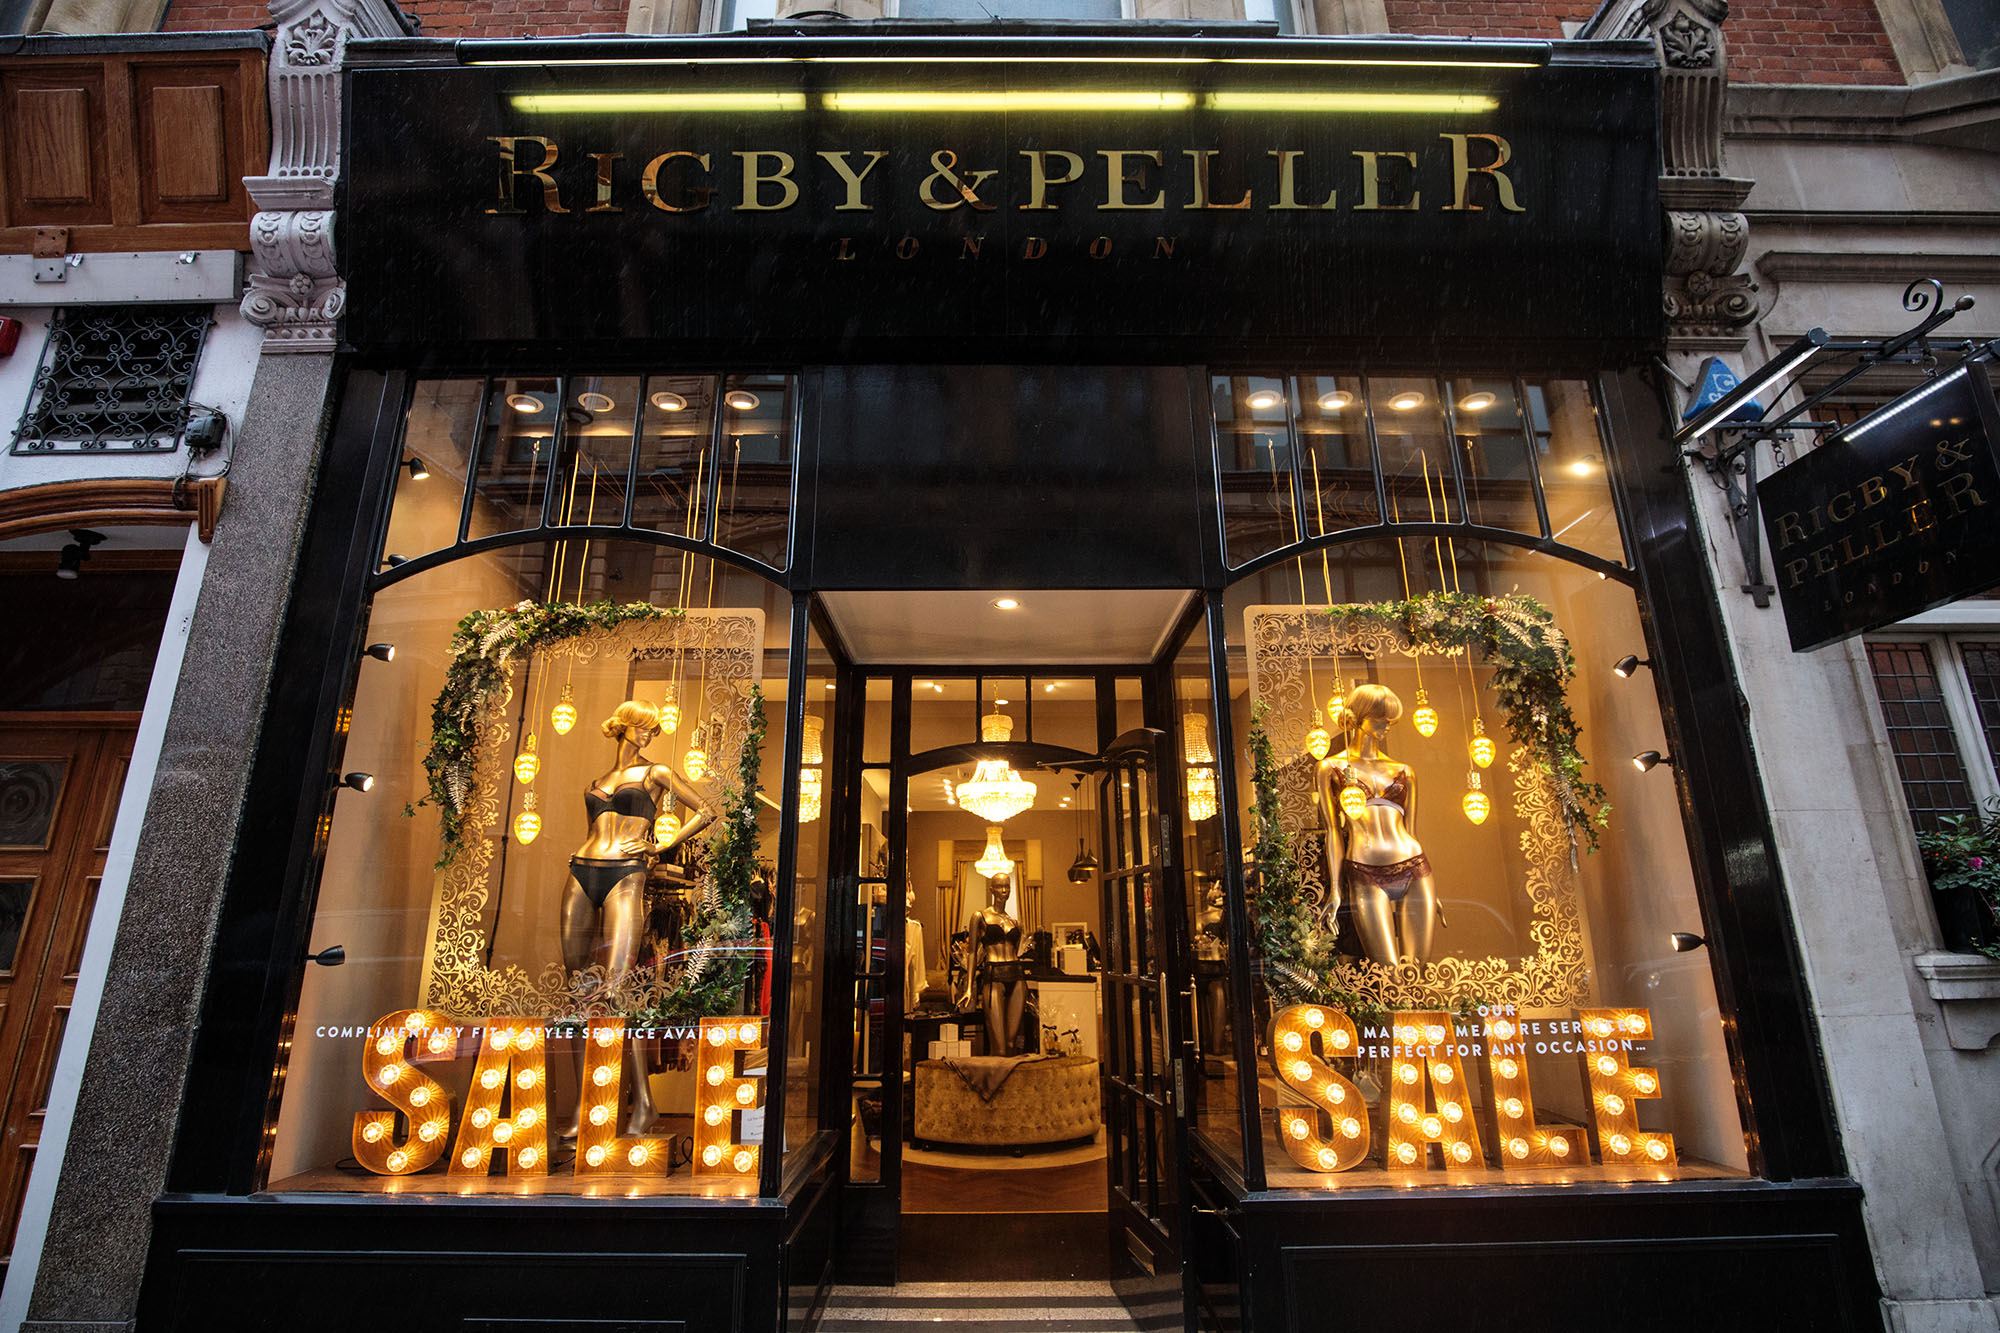 Rigby & Peller Lose Royal Warrent Over Former Owner's Tell-All Book